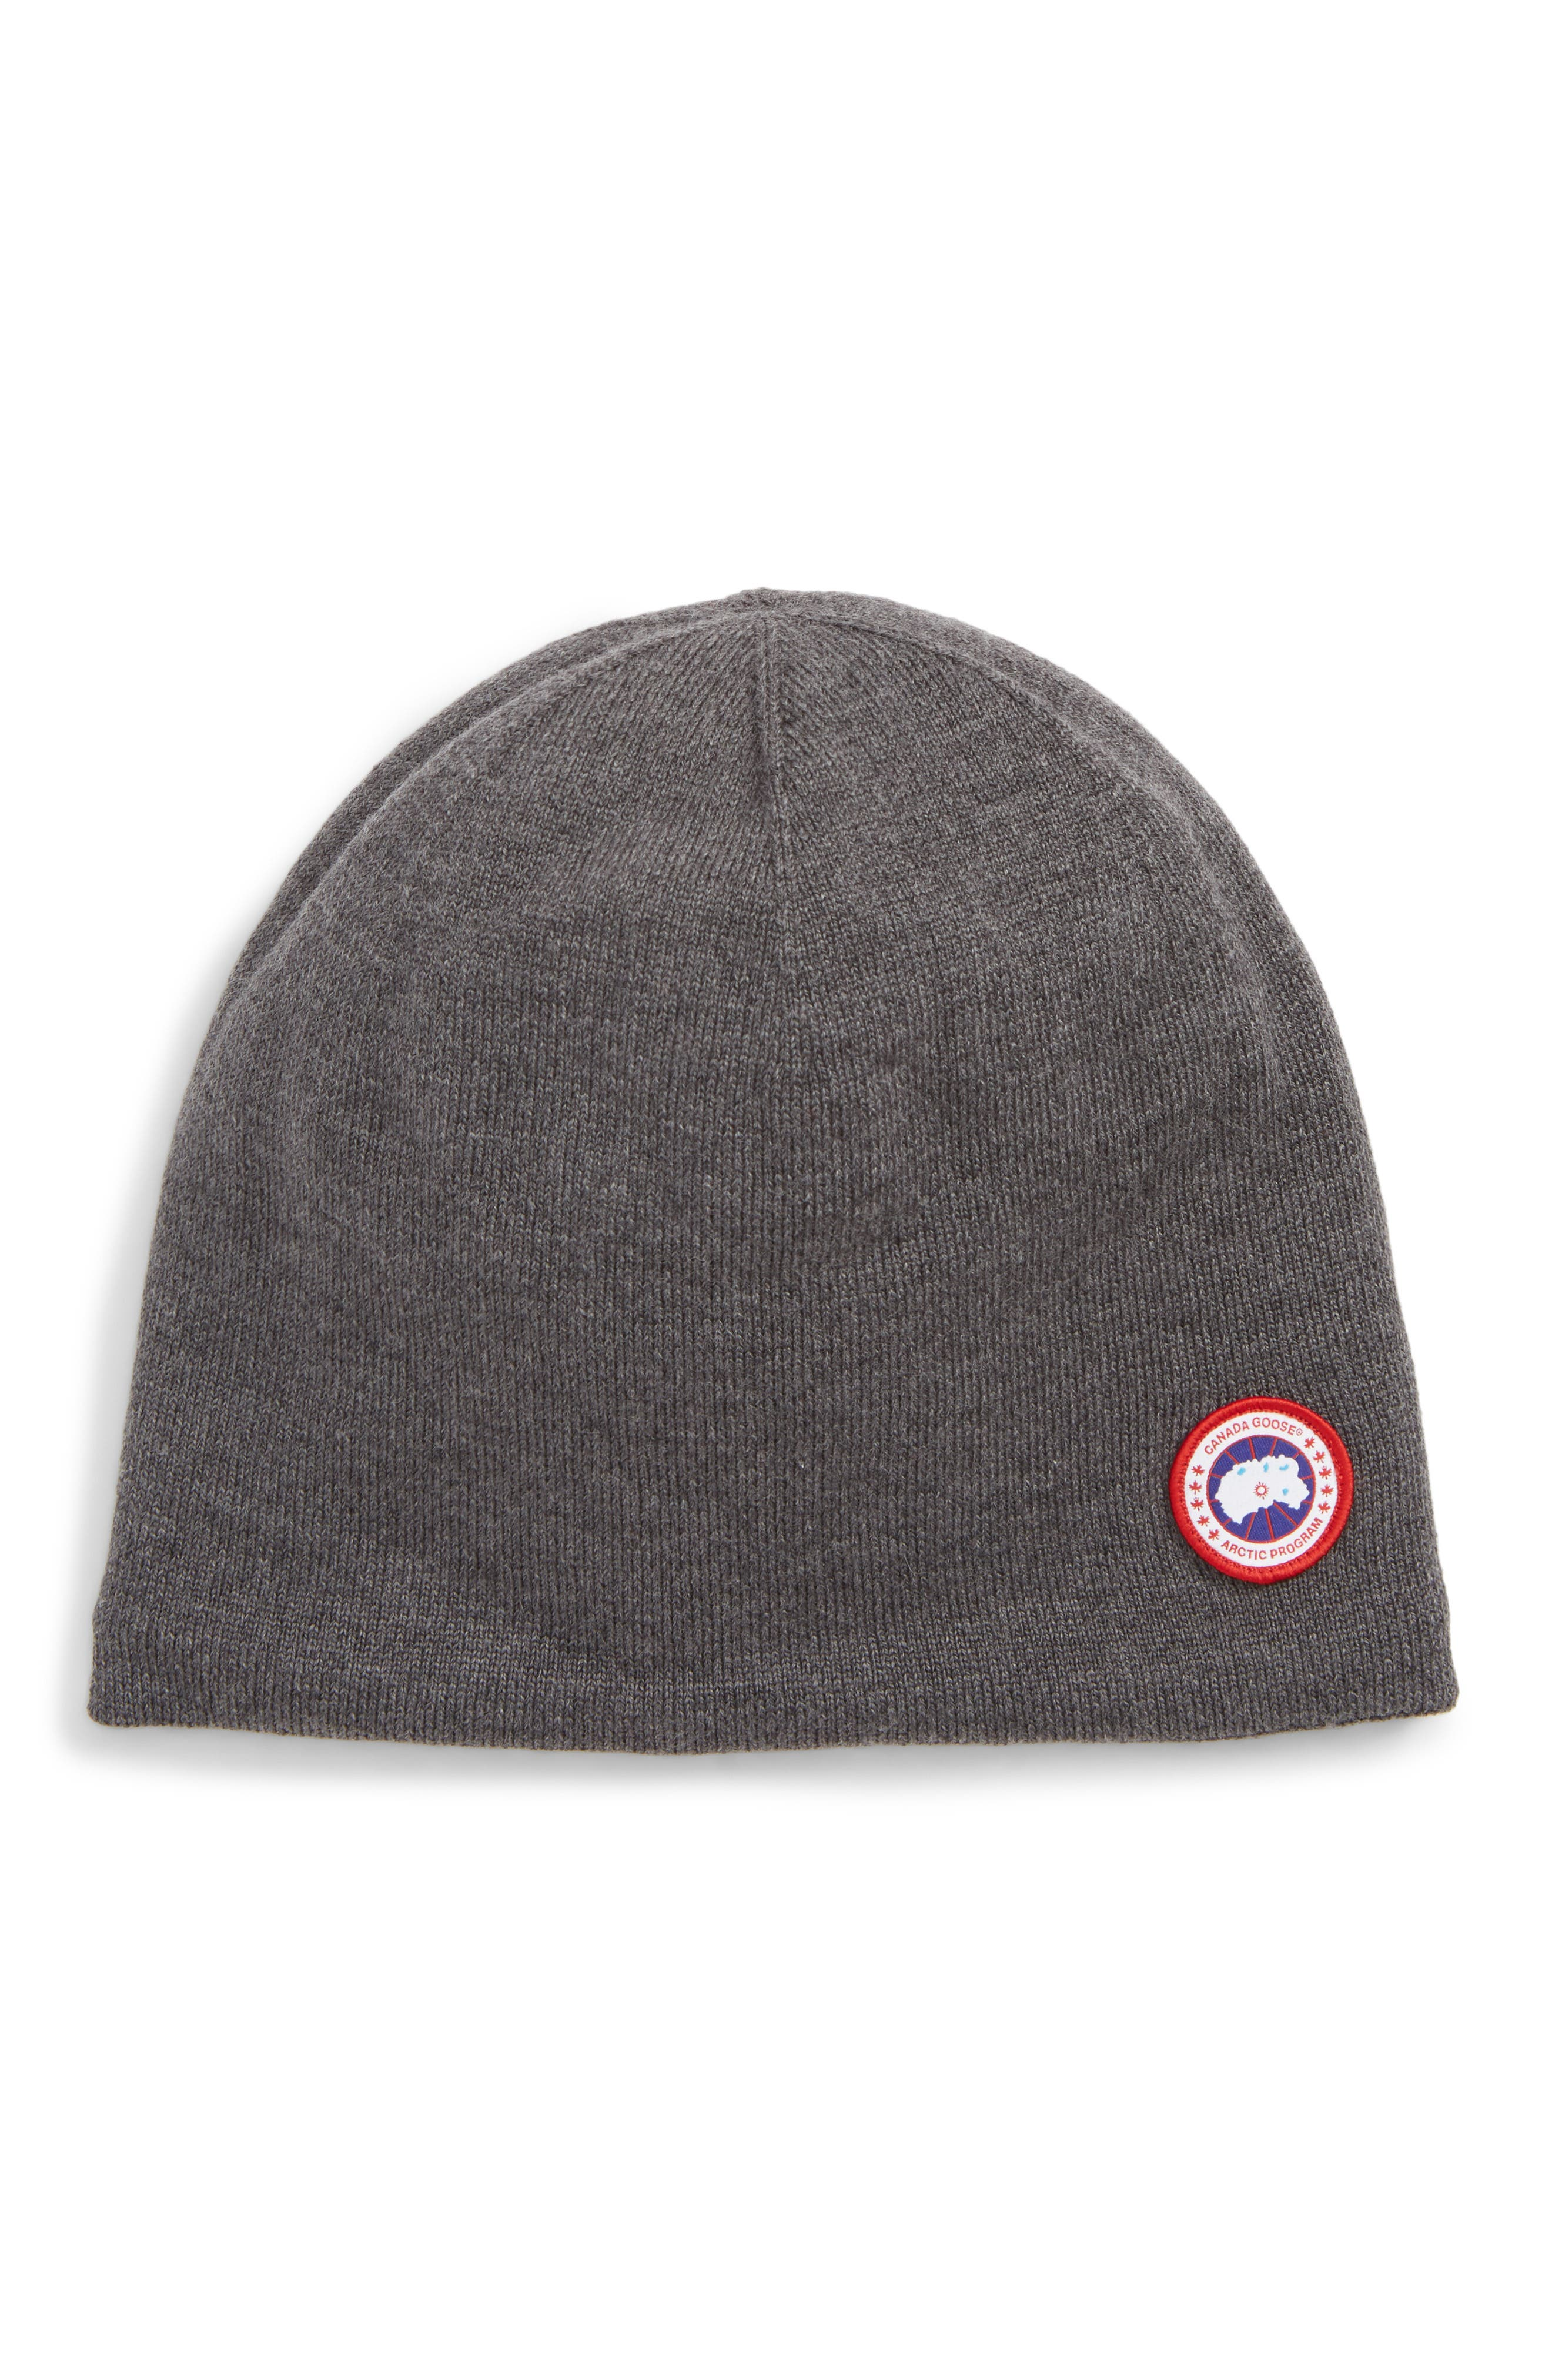 Men'S Standard Logo Toque Winter Beanie Hat in Iron Grey